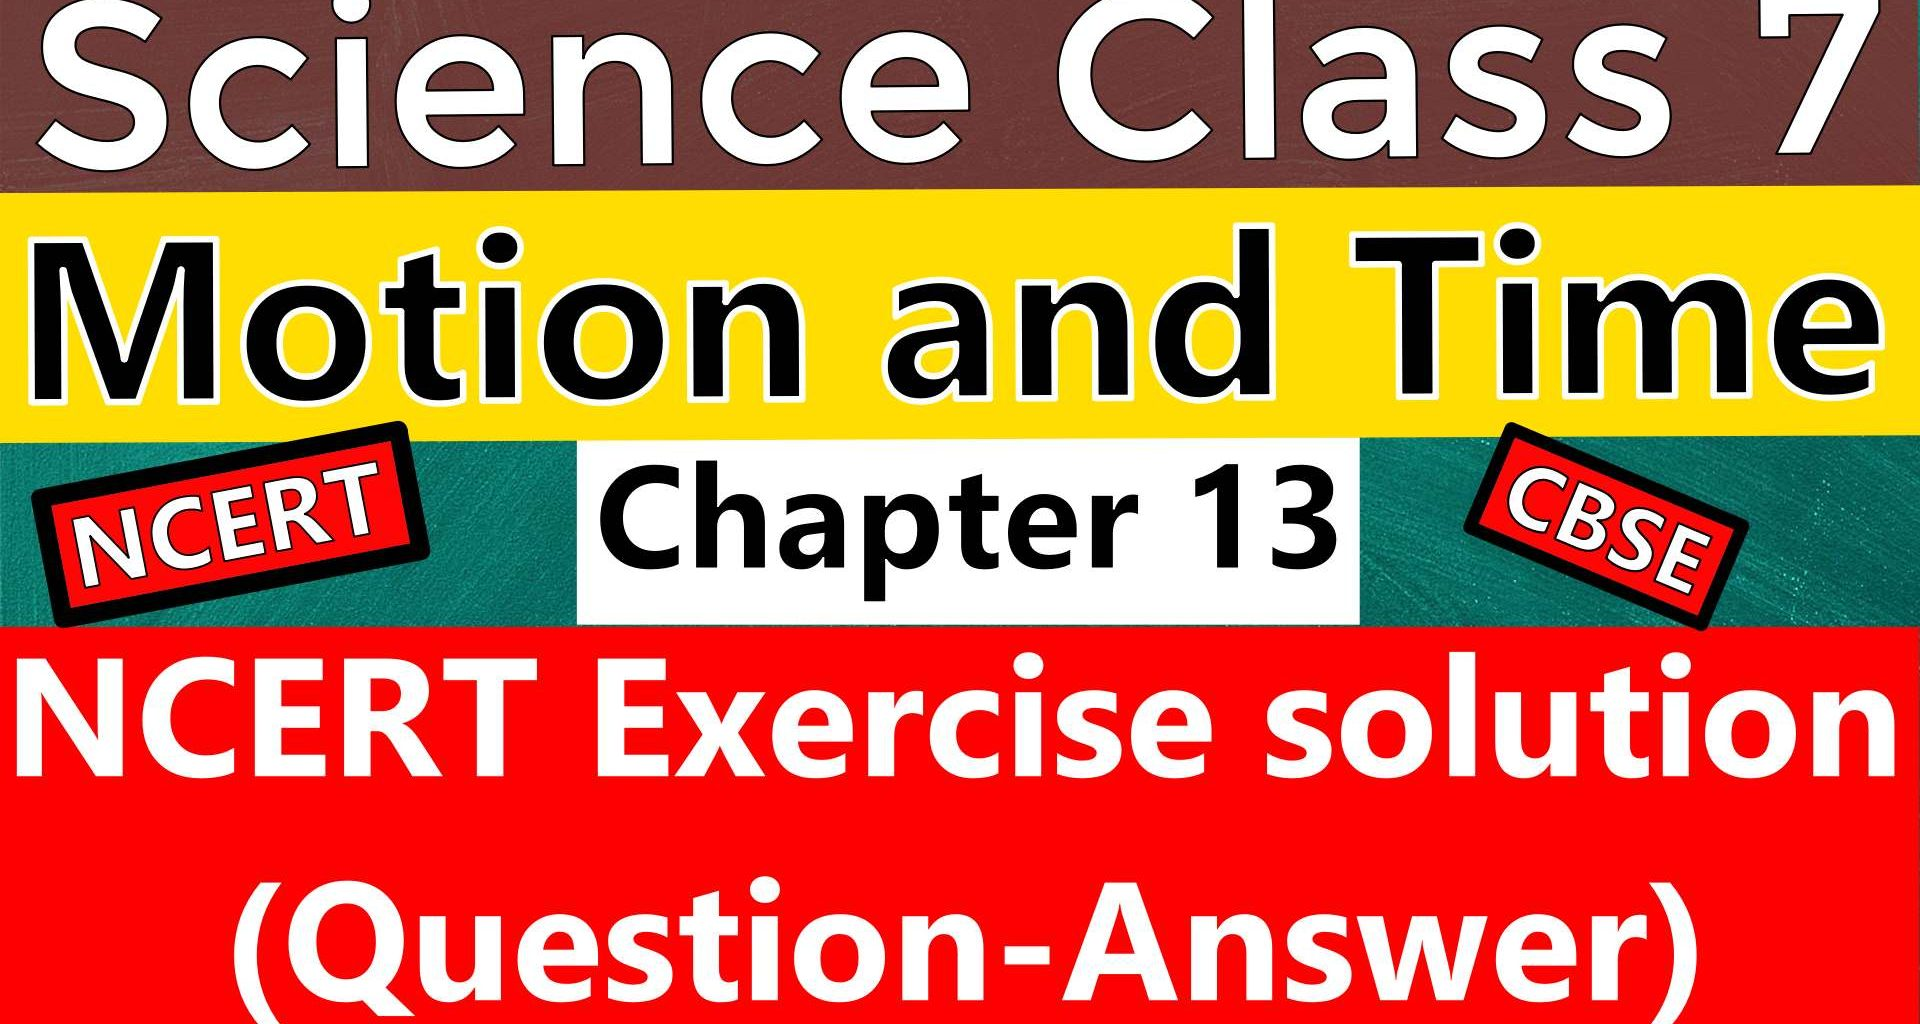 Science Class 7 Chapter 12 Reproduction in Plants - NCERT Exercise Solutions (Question-Answer)